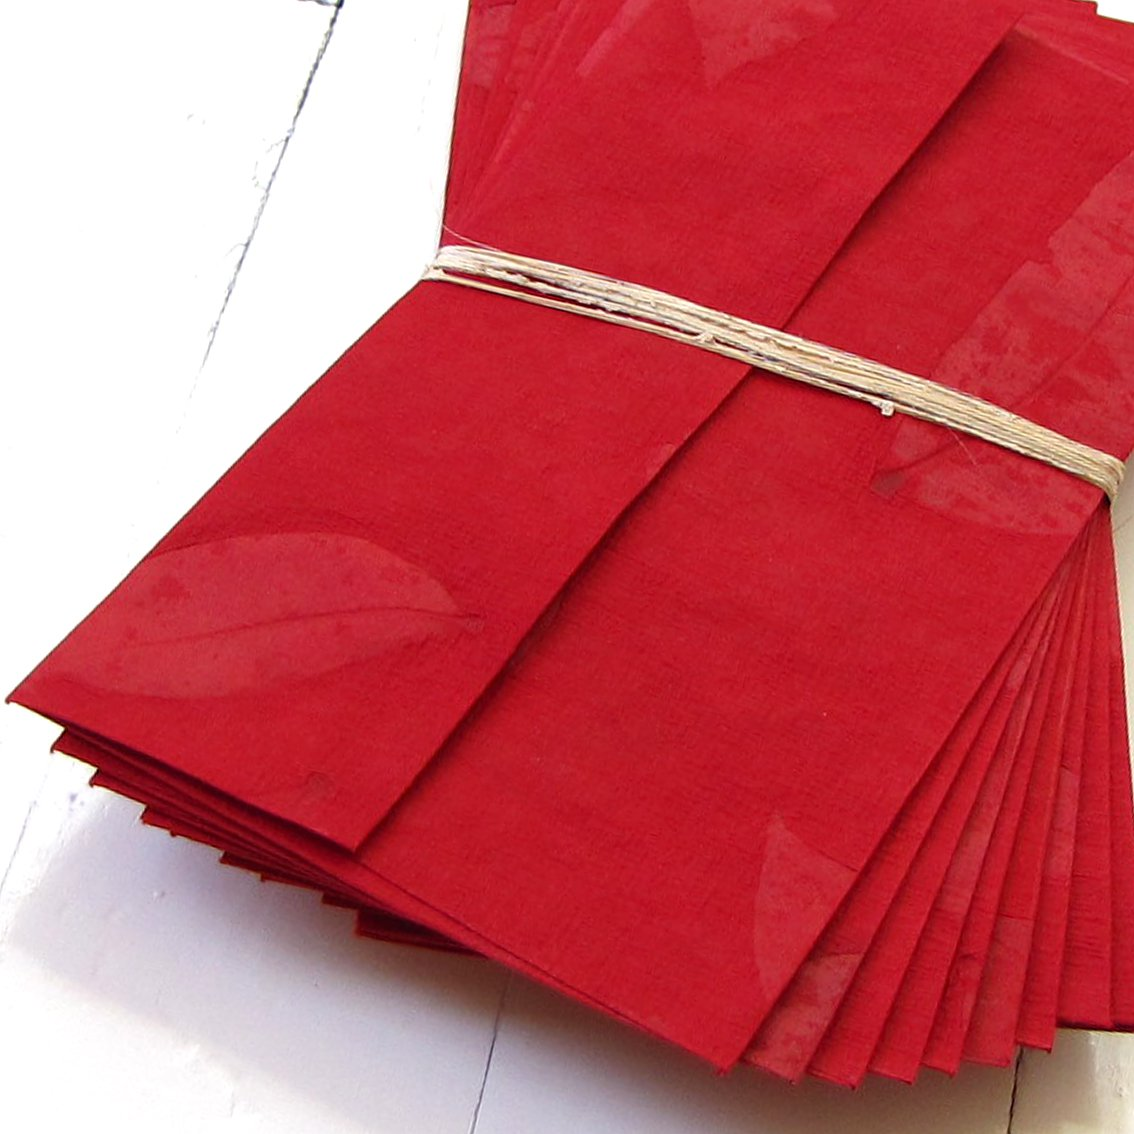 Writing paper set 10 dark red handmade recycled cotton leaf imprint paper